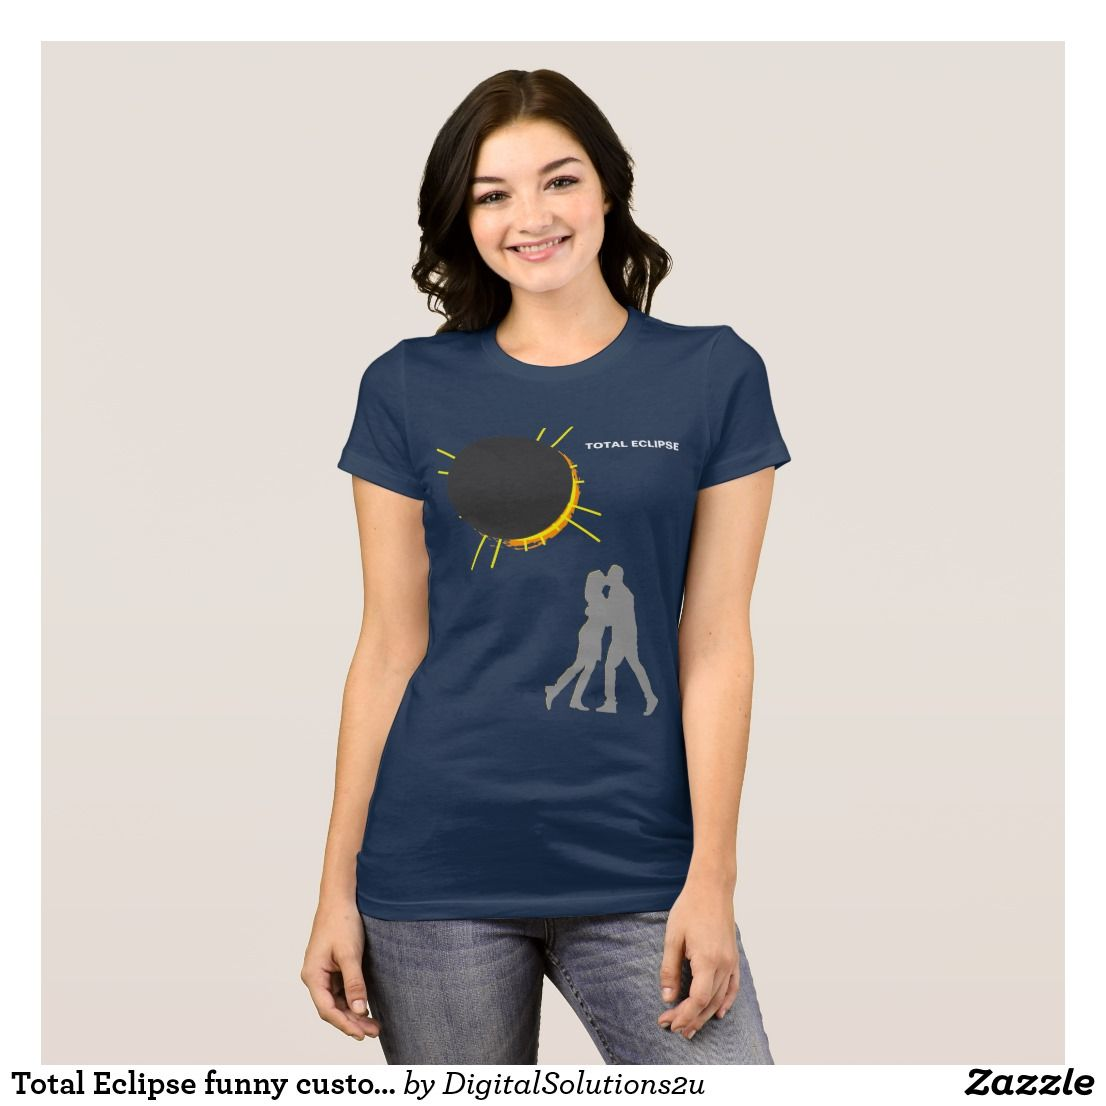 Design your own t shirt zazzle - Total Eclipse Funny Customizable T Shirt